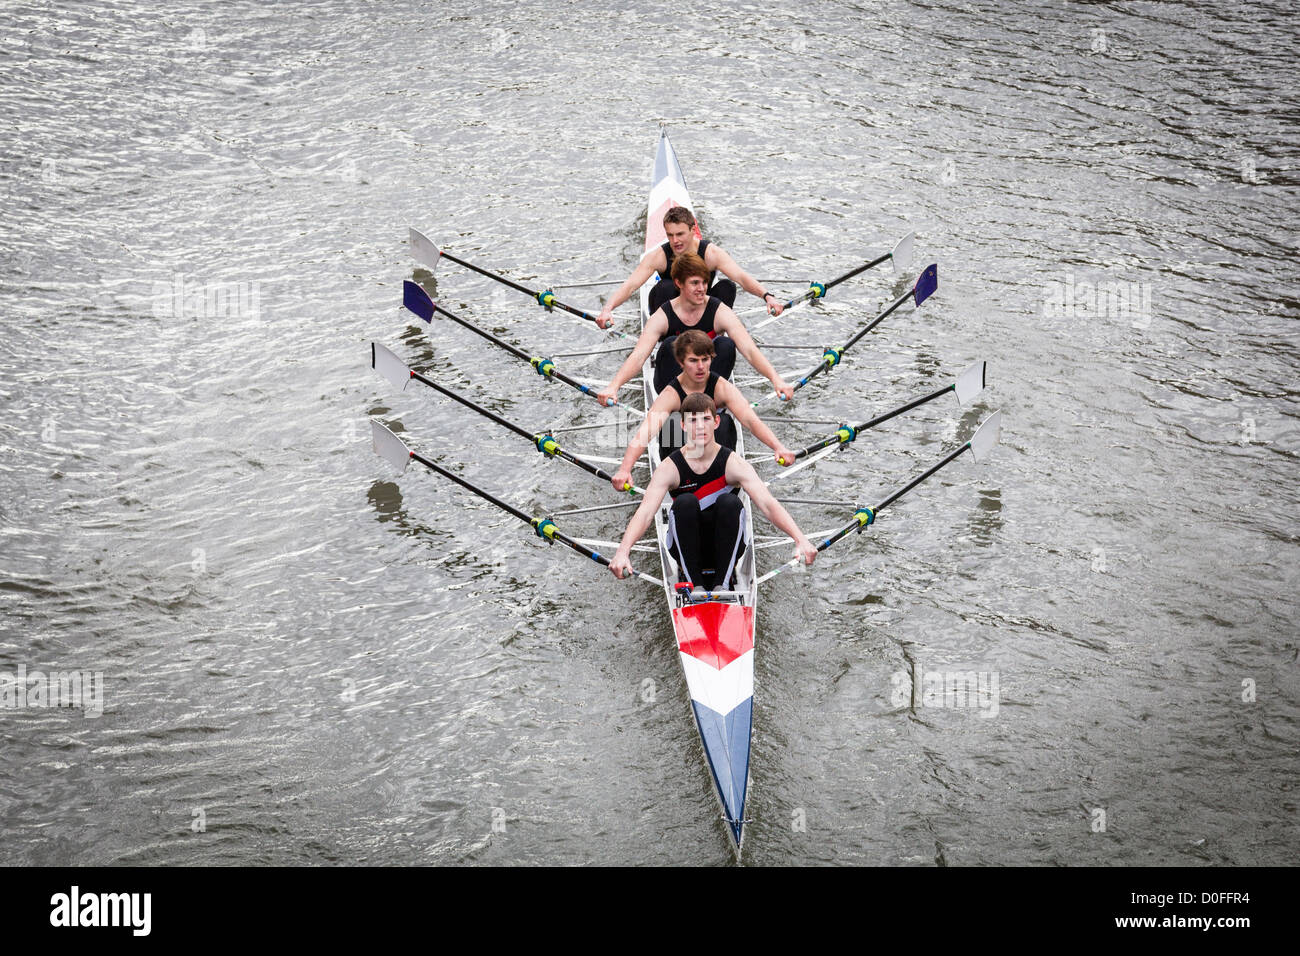 Men's coxless quad sculls, rowing in the Head of the River Race, Bristol, February 2012. - Stock Image